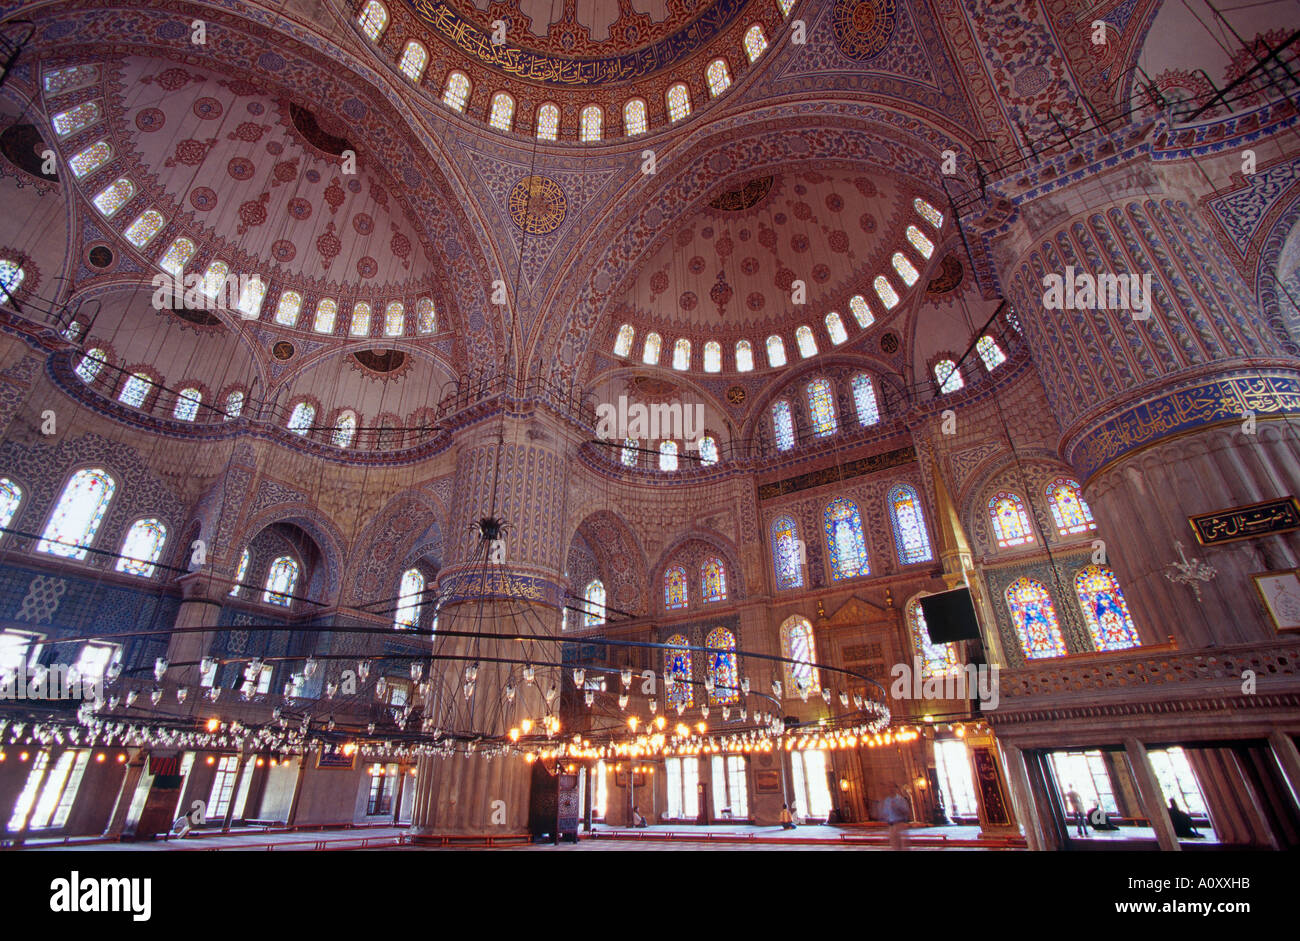 Interior Of Blue Mosque Sultan Ahmet Camii Built Between 1609 And 1616  Istanbul Turkey   Stock